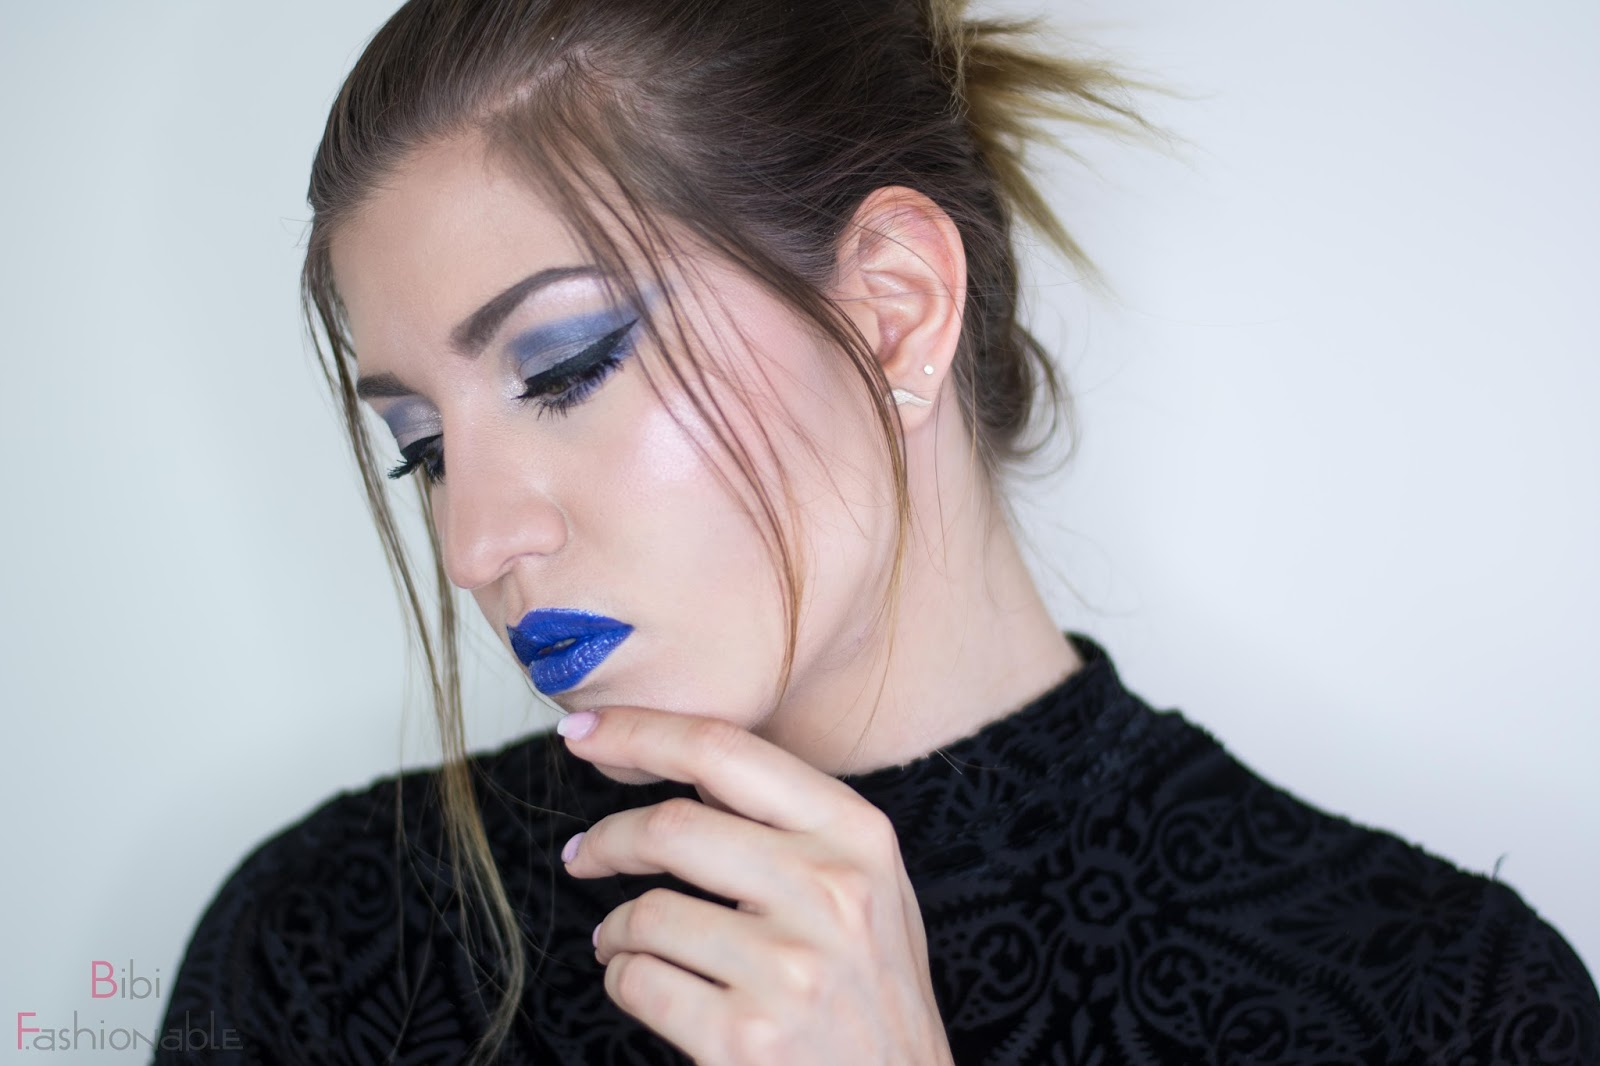 NYX Look Shades of Blue Profil Blick nach unten